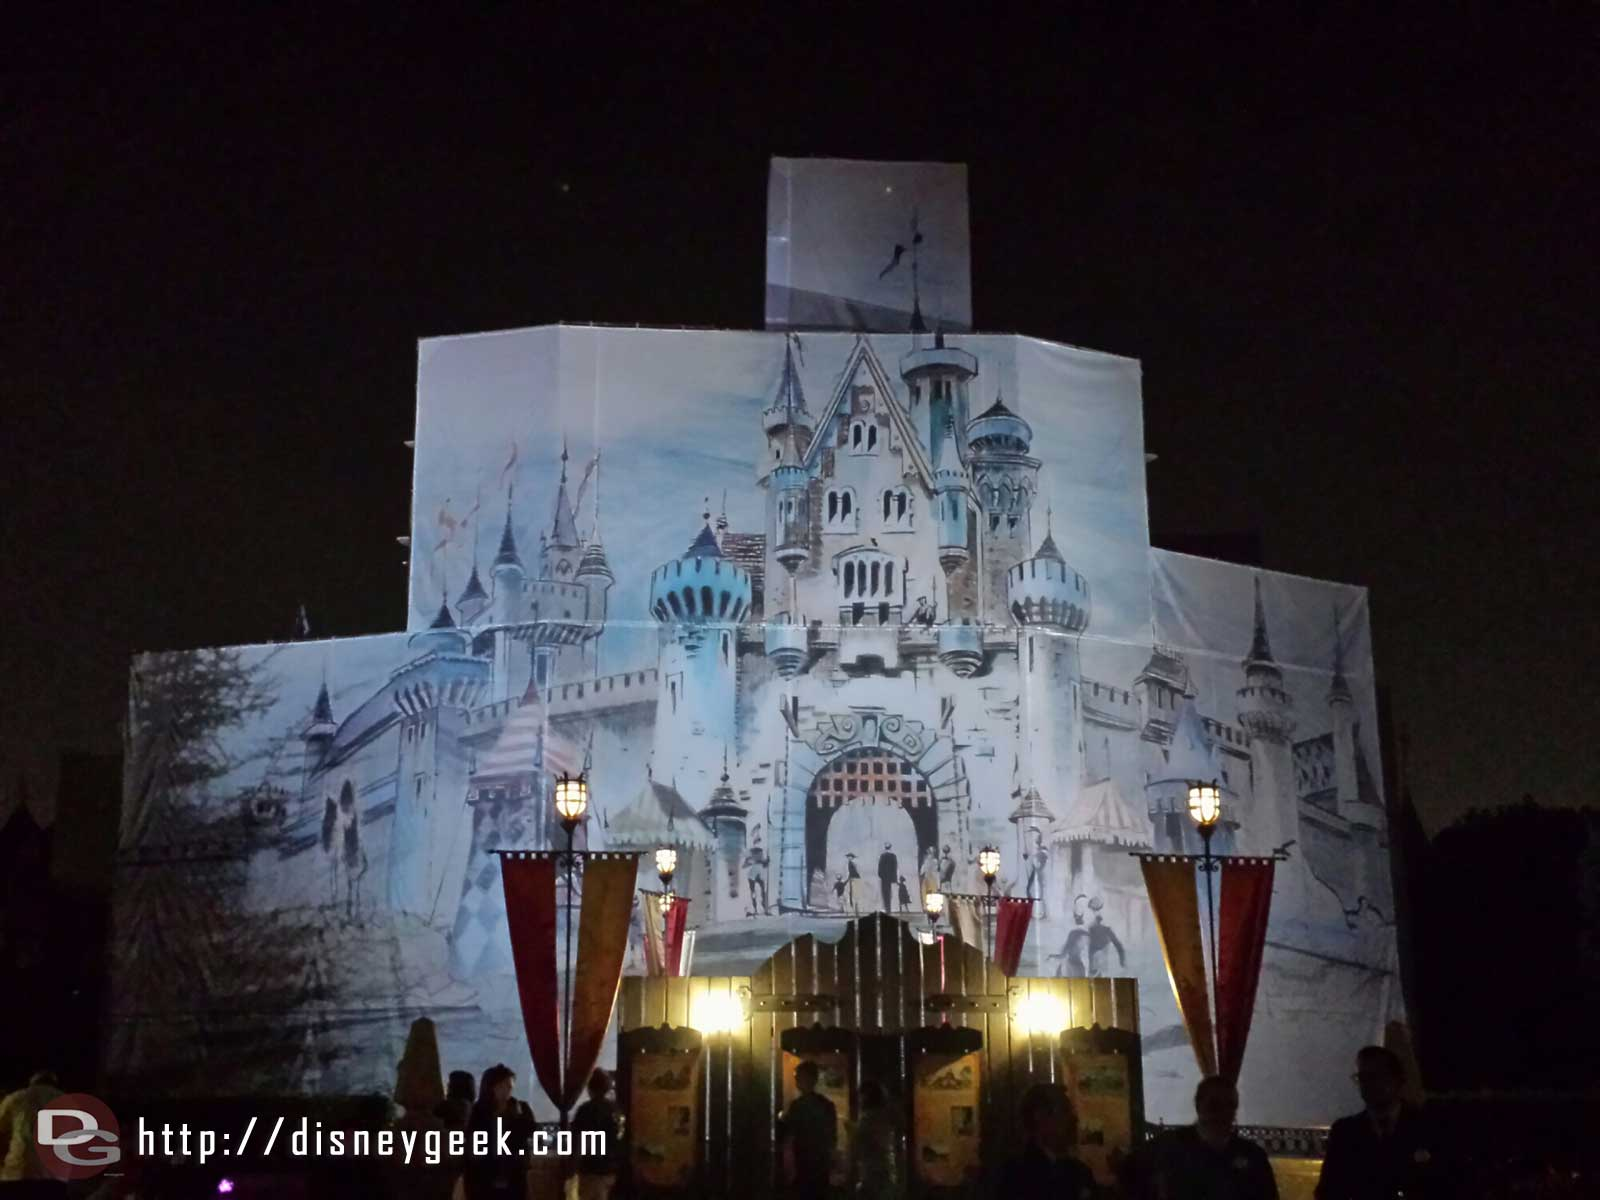 The castle artwork is now lit up at night